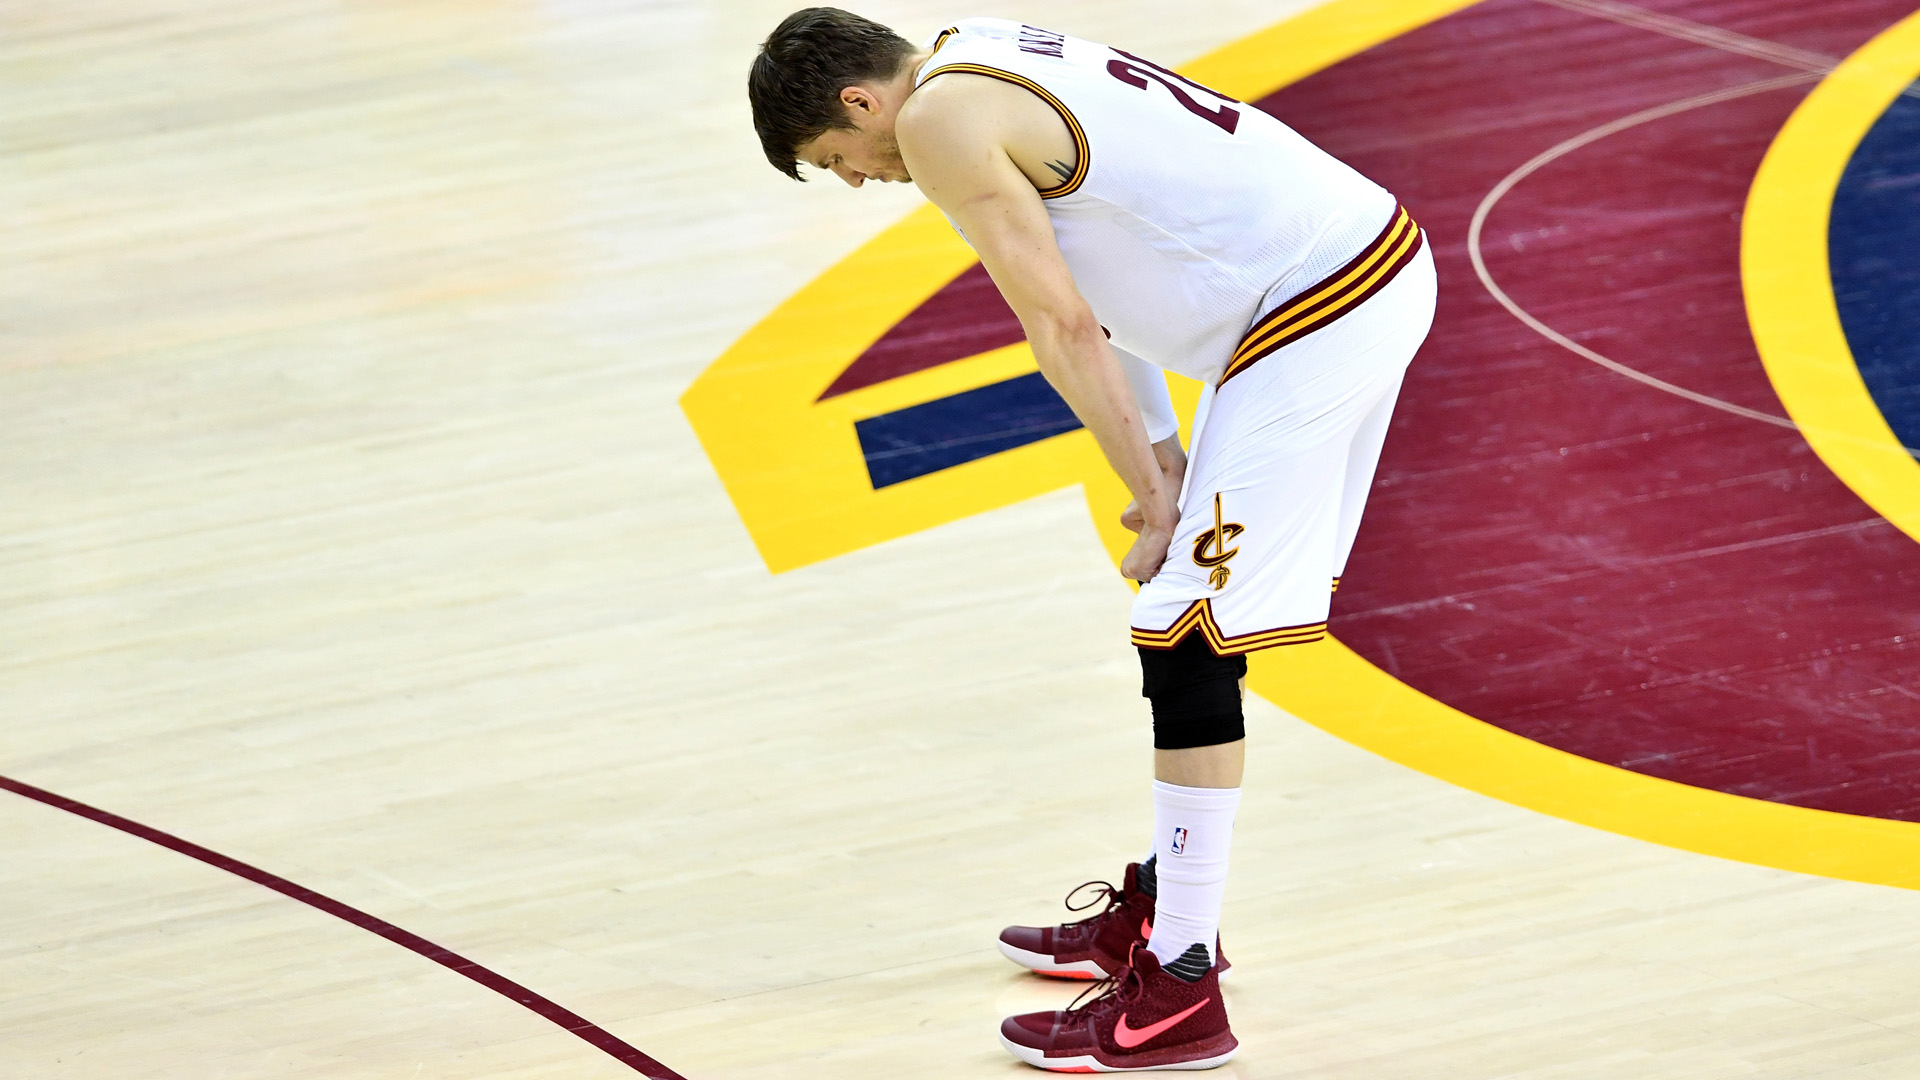 Kyle Korver excused from the Cavs after brother's passing